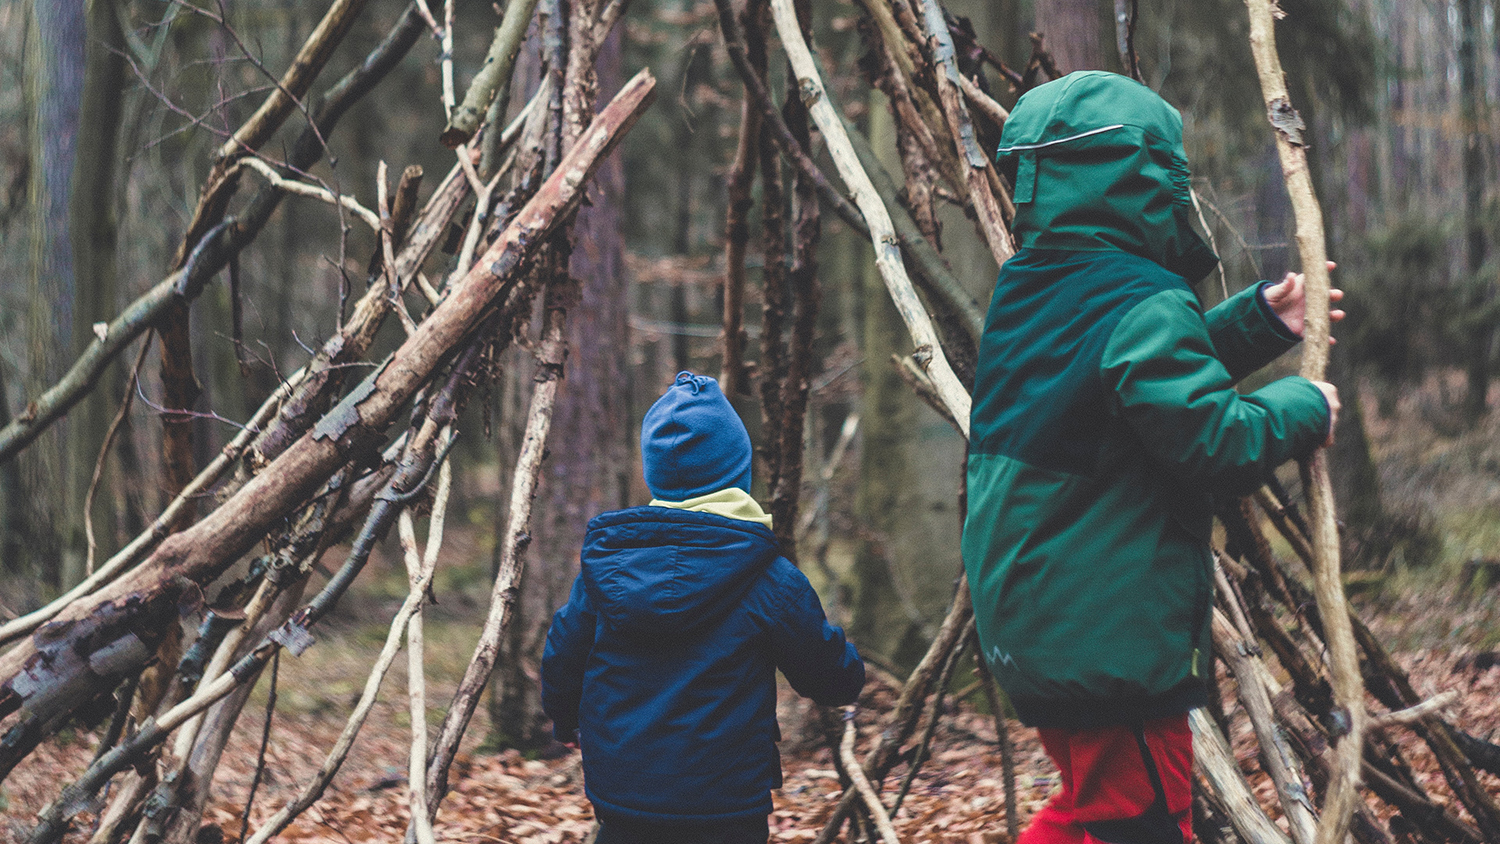 Two children building a stick structure in the woods